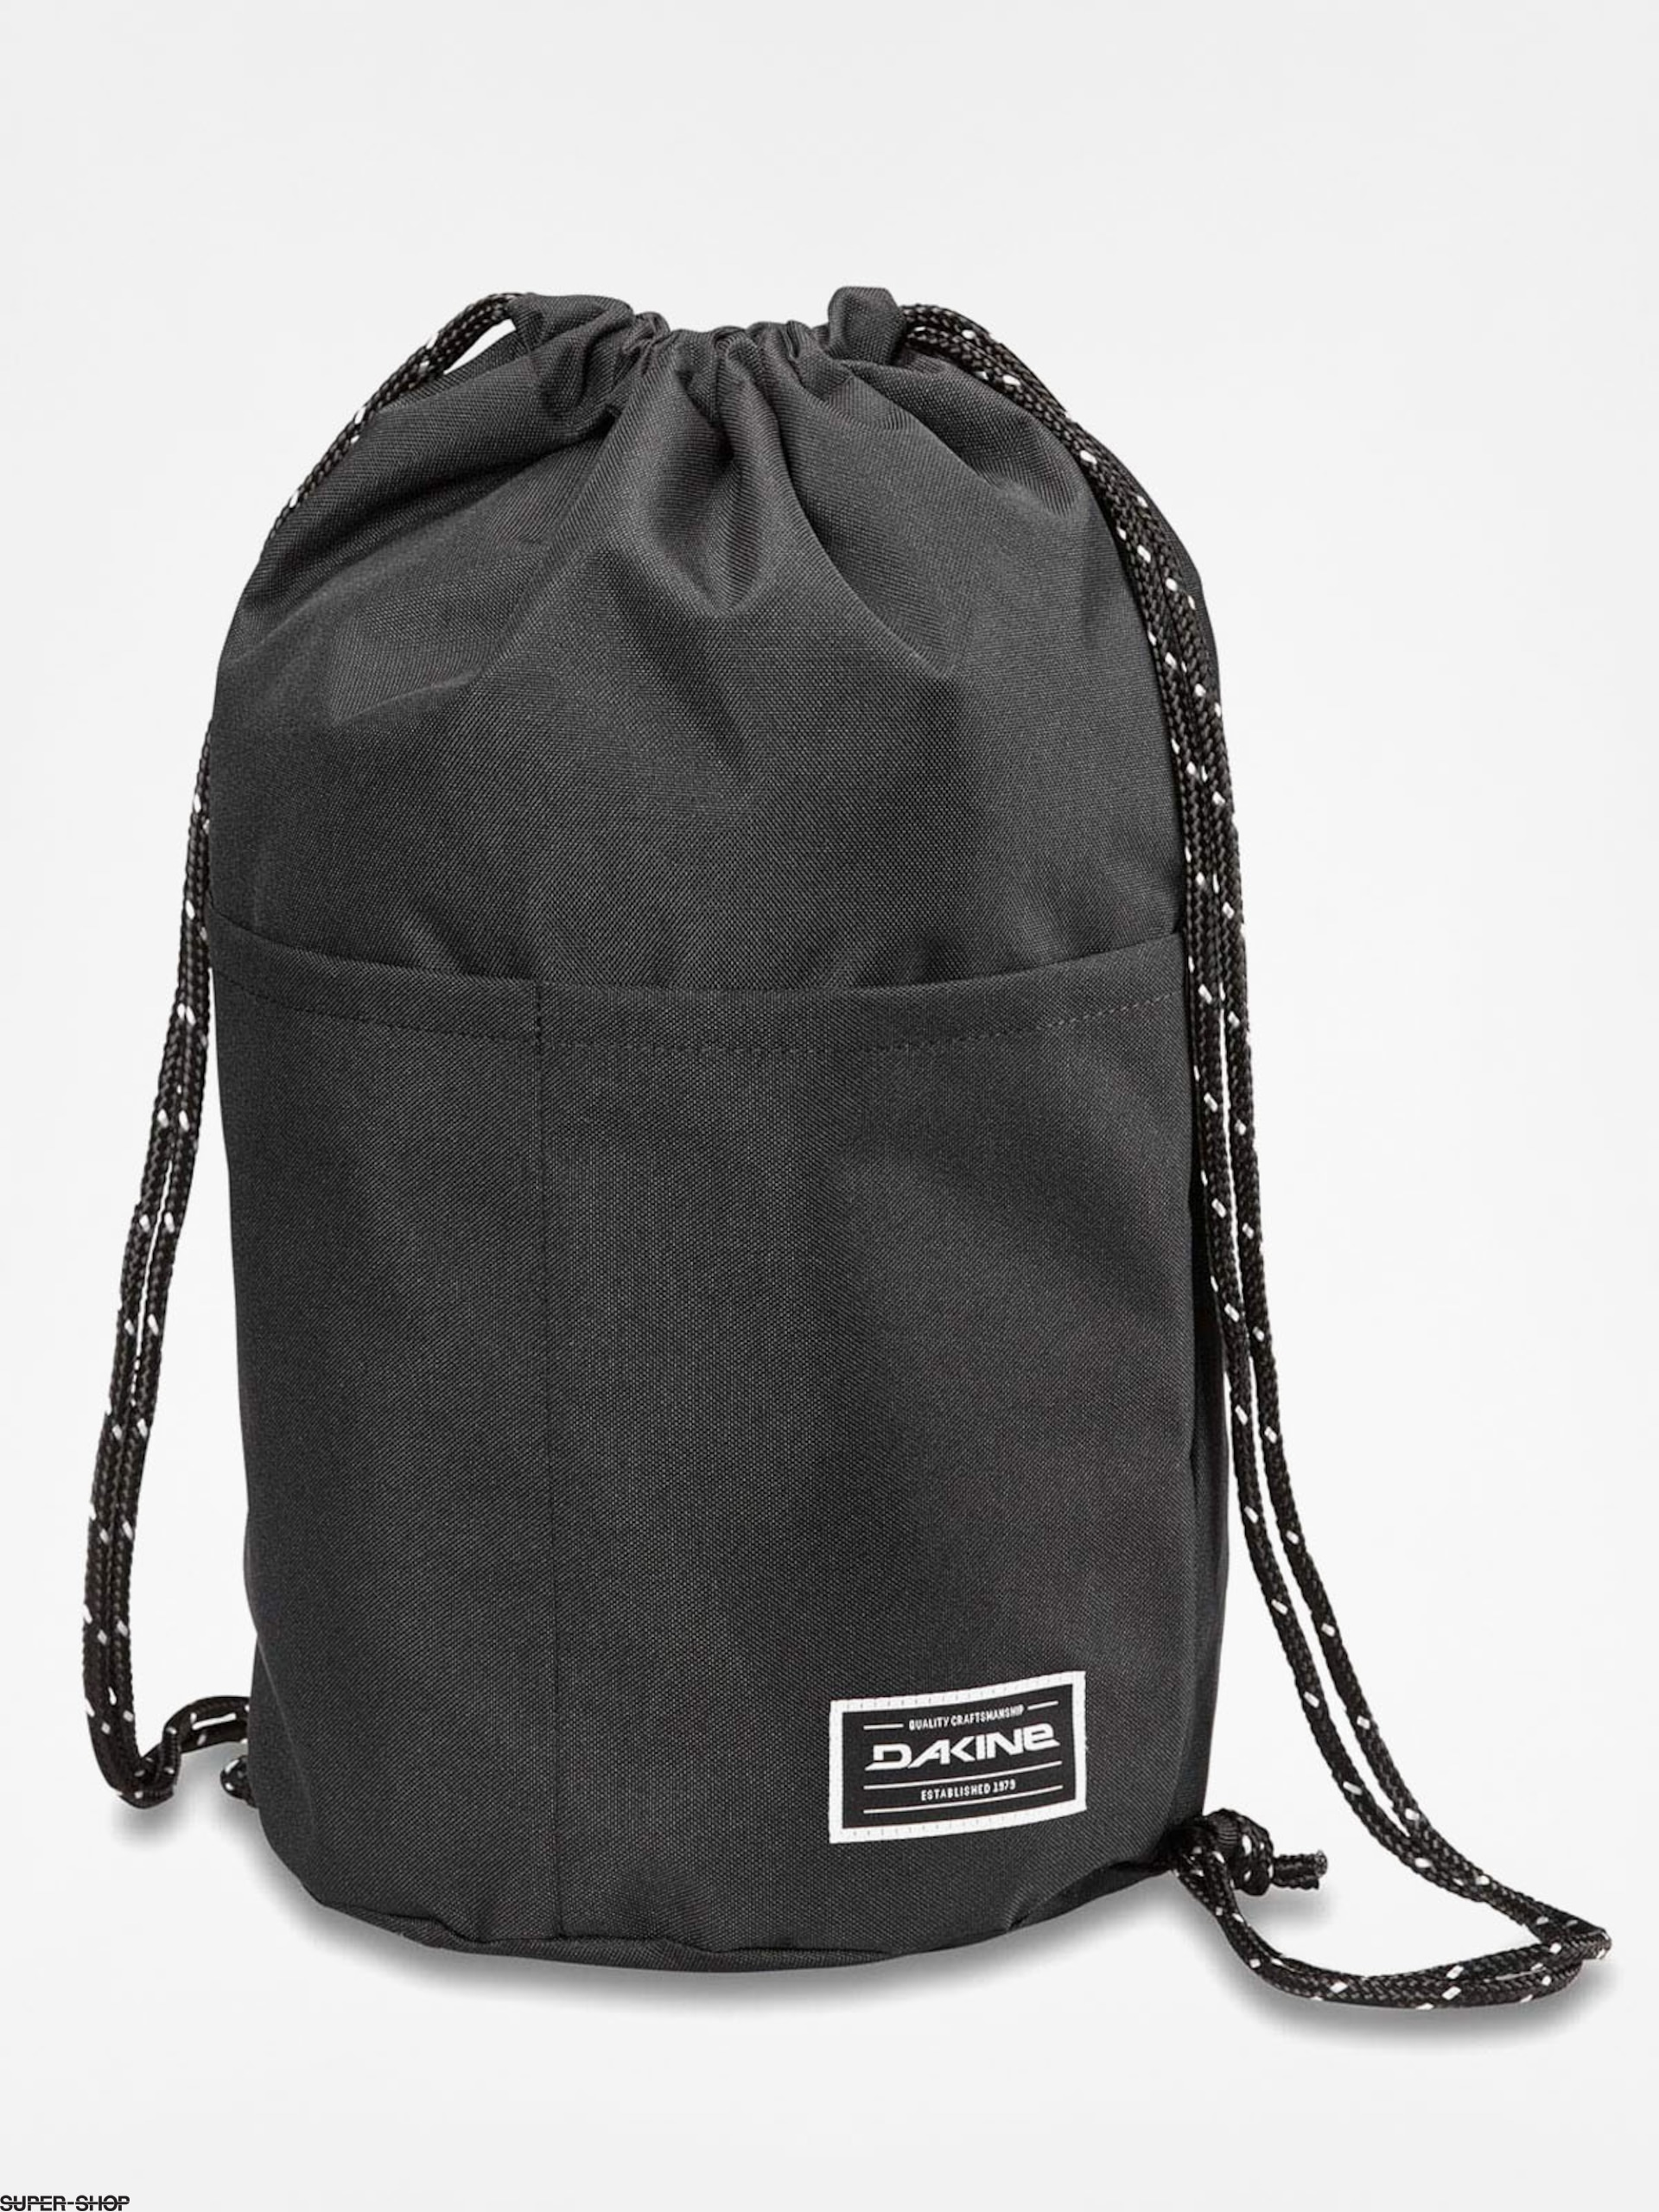 Dakine Rucksack Cinch Pack 17L (black)